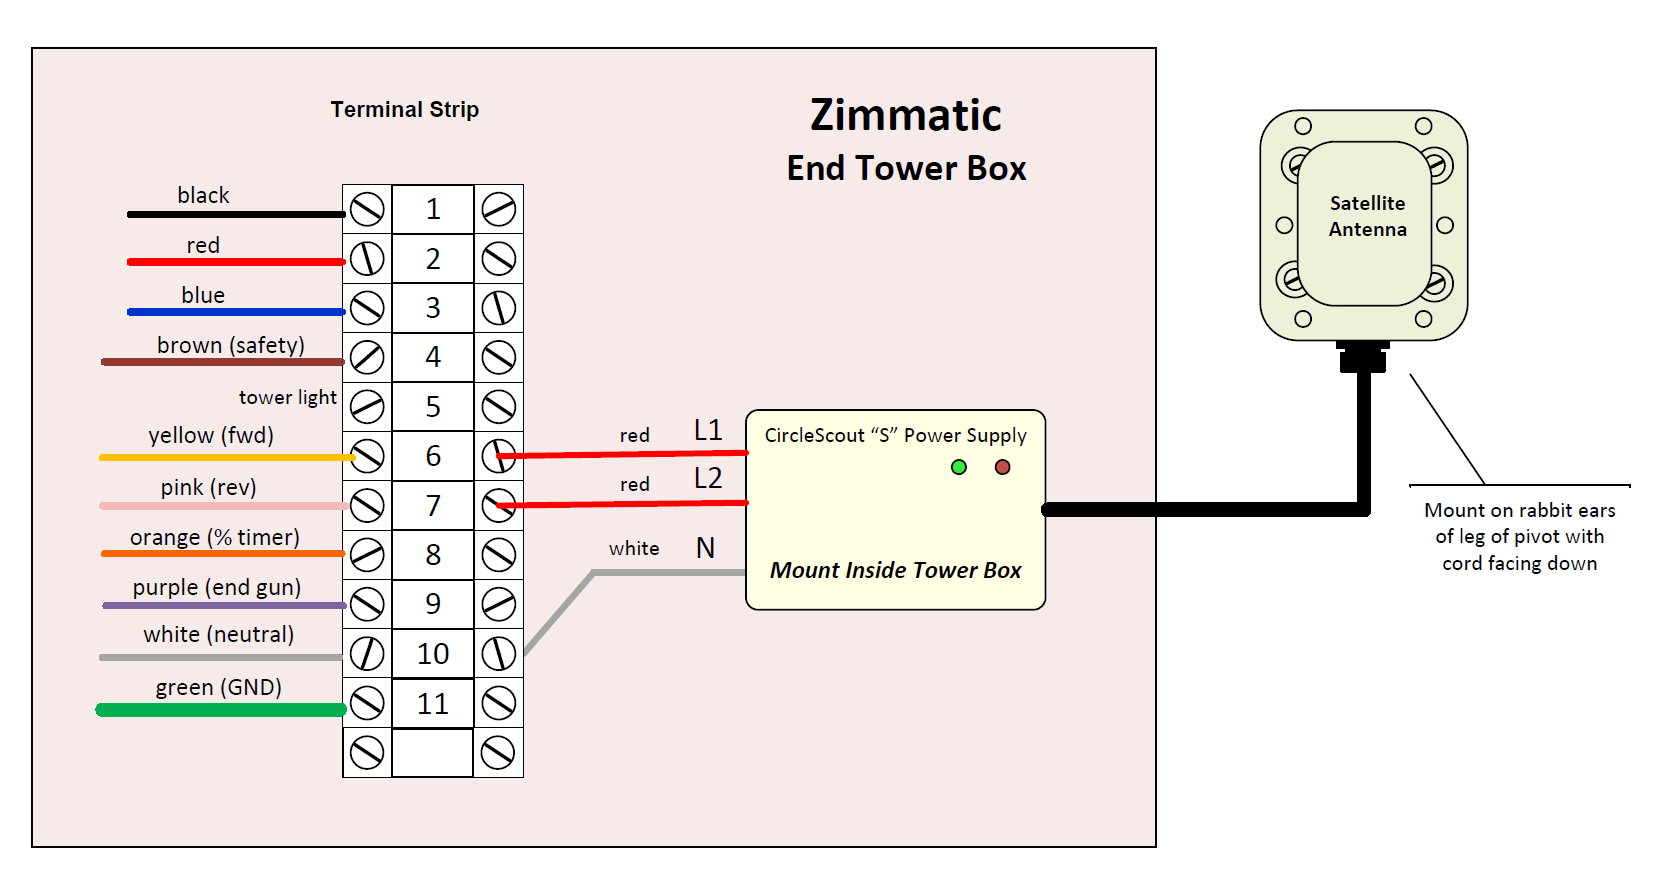 zimmatic wiring for circlescout s (2018 satellite version) net sukup wiring diagram written by cara updated over a week ago